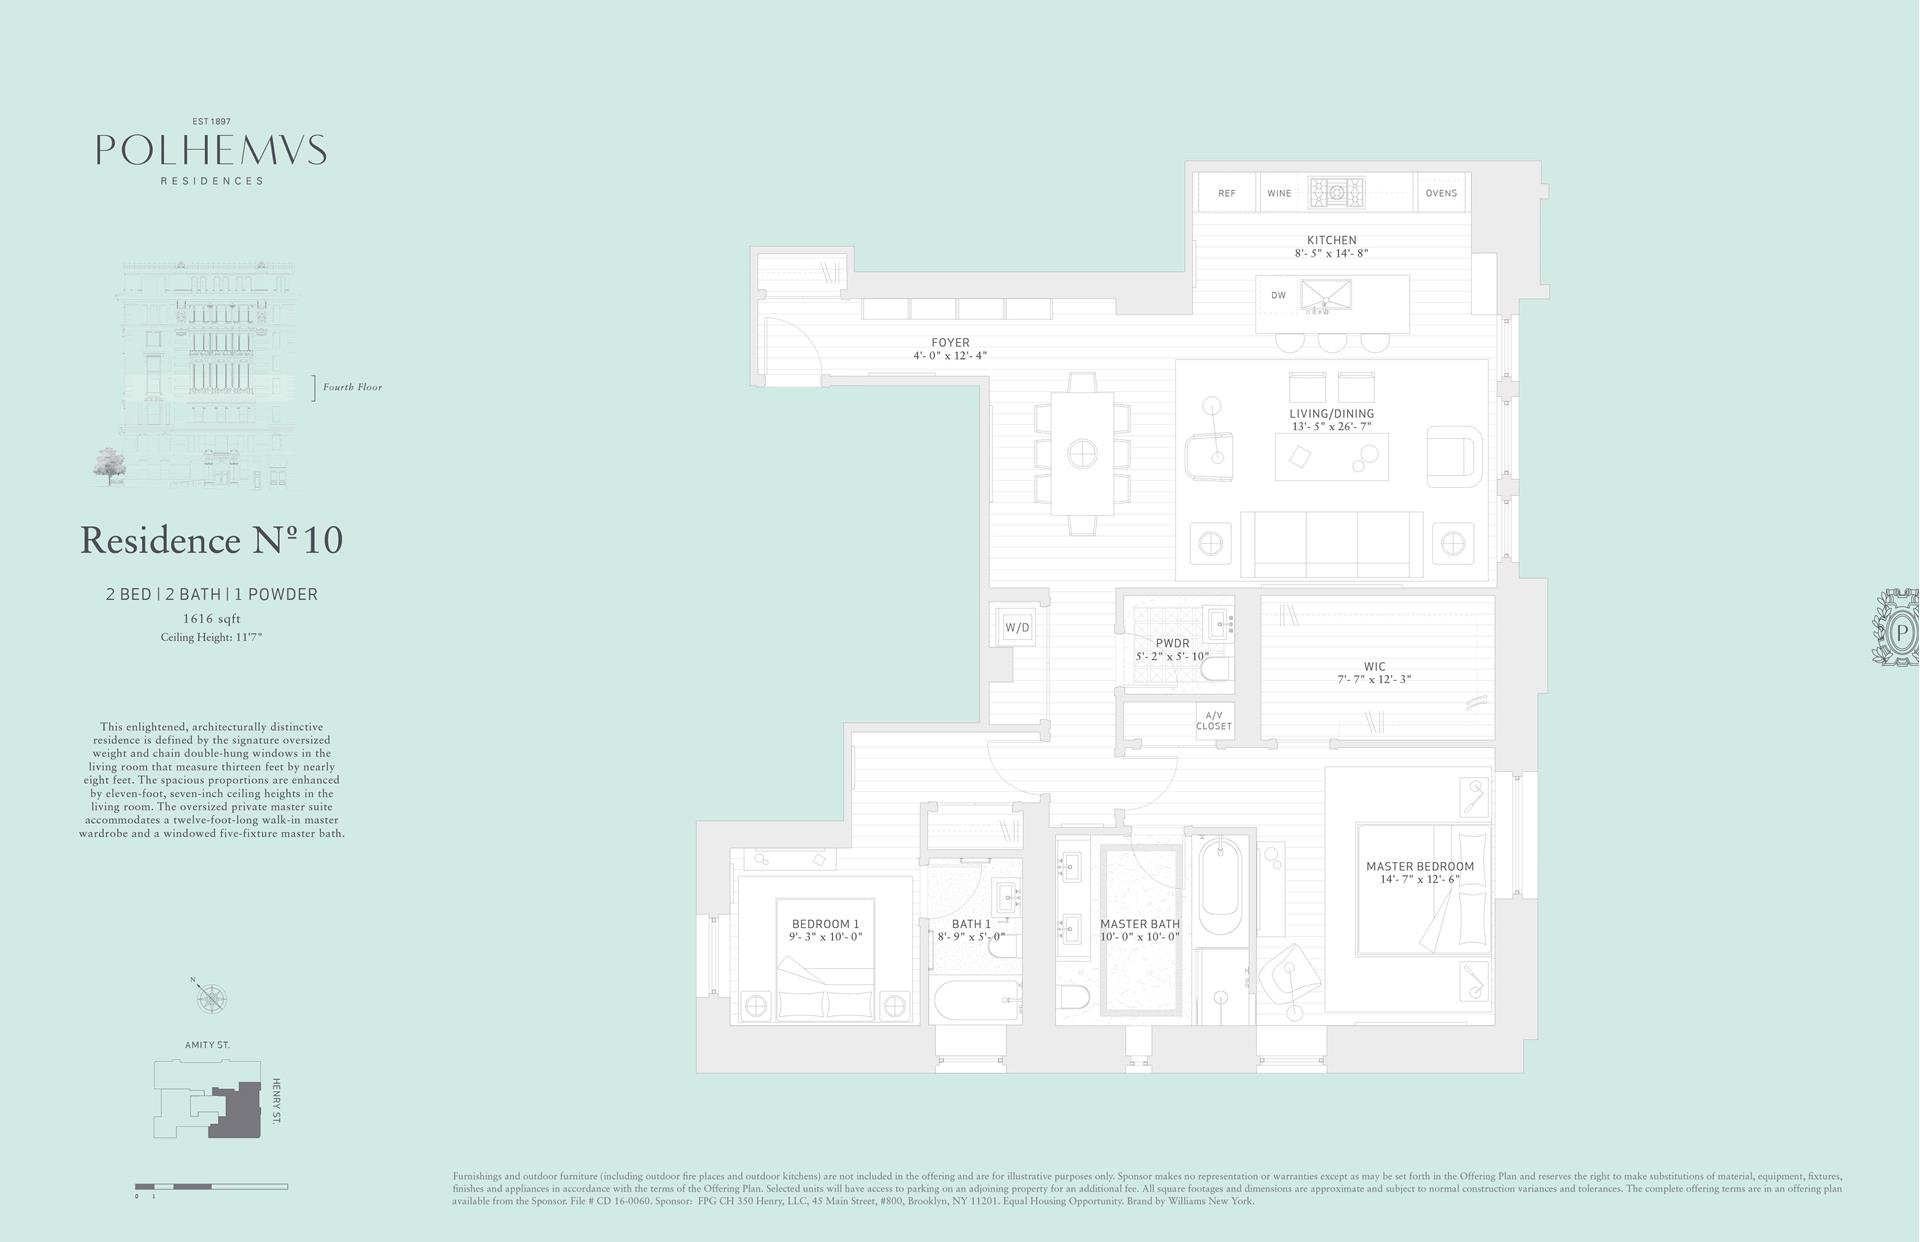 Floor plan of Polhemus, 100 Amity St, RES10 - Cobble Hill, New York